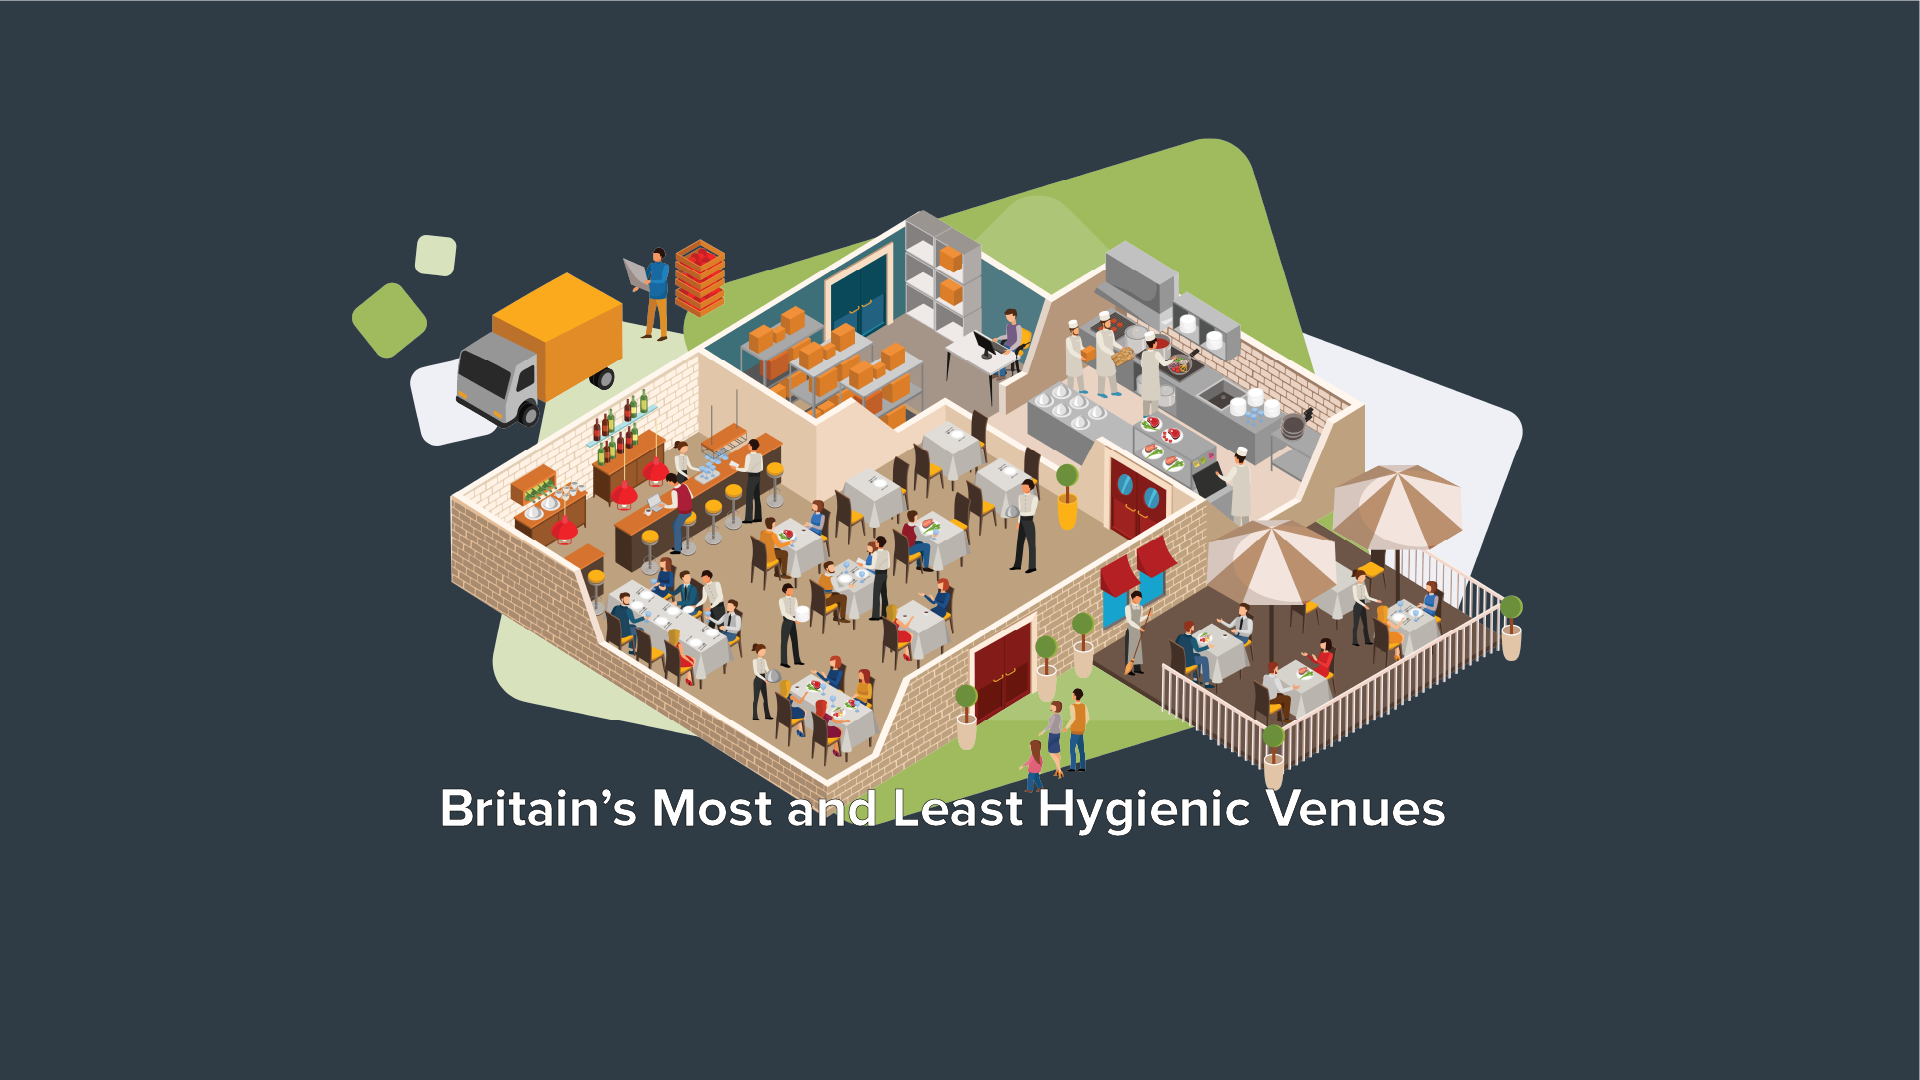 Britain's Most and Least Hygienic Venues